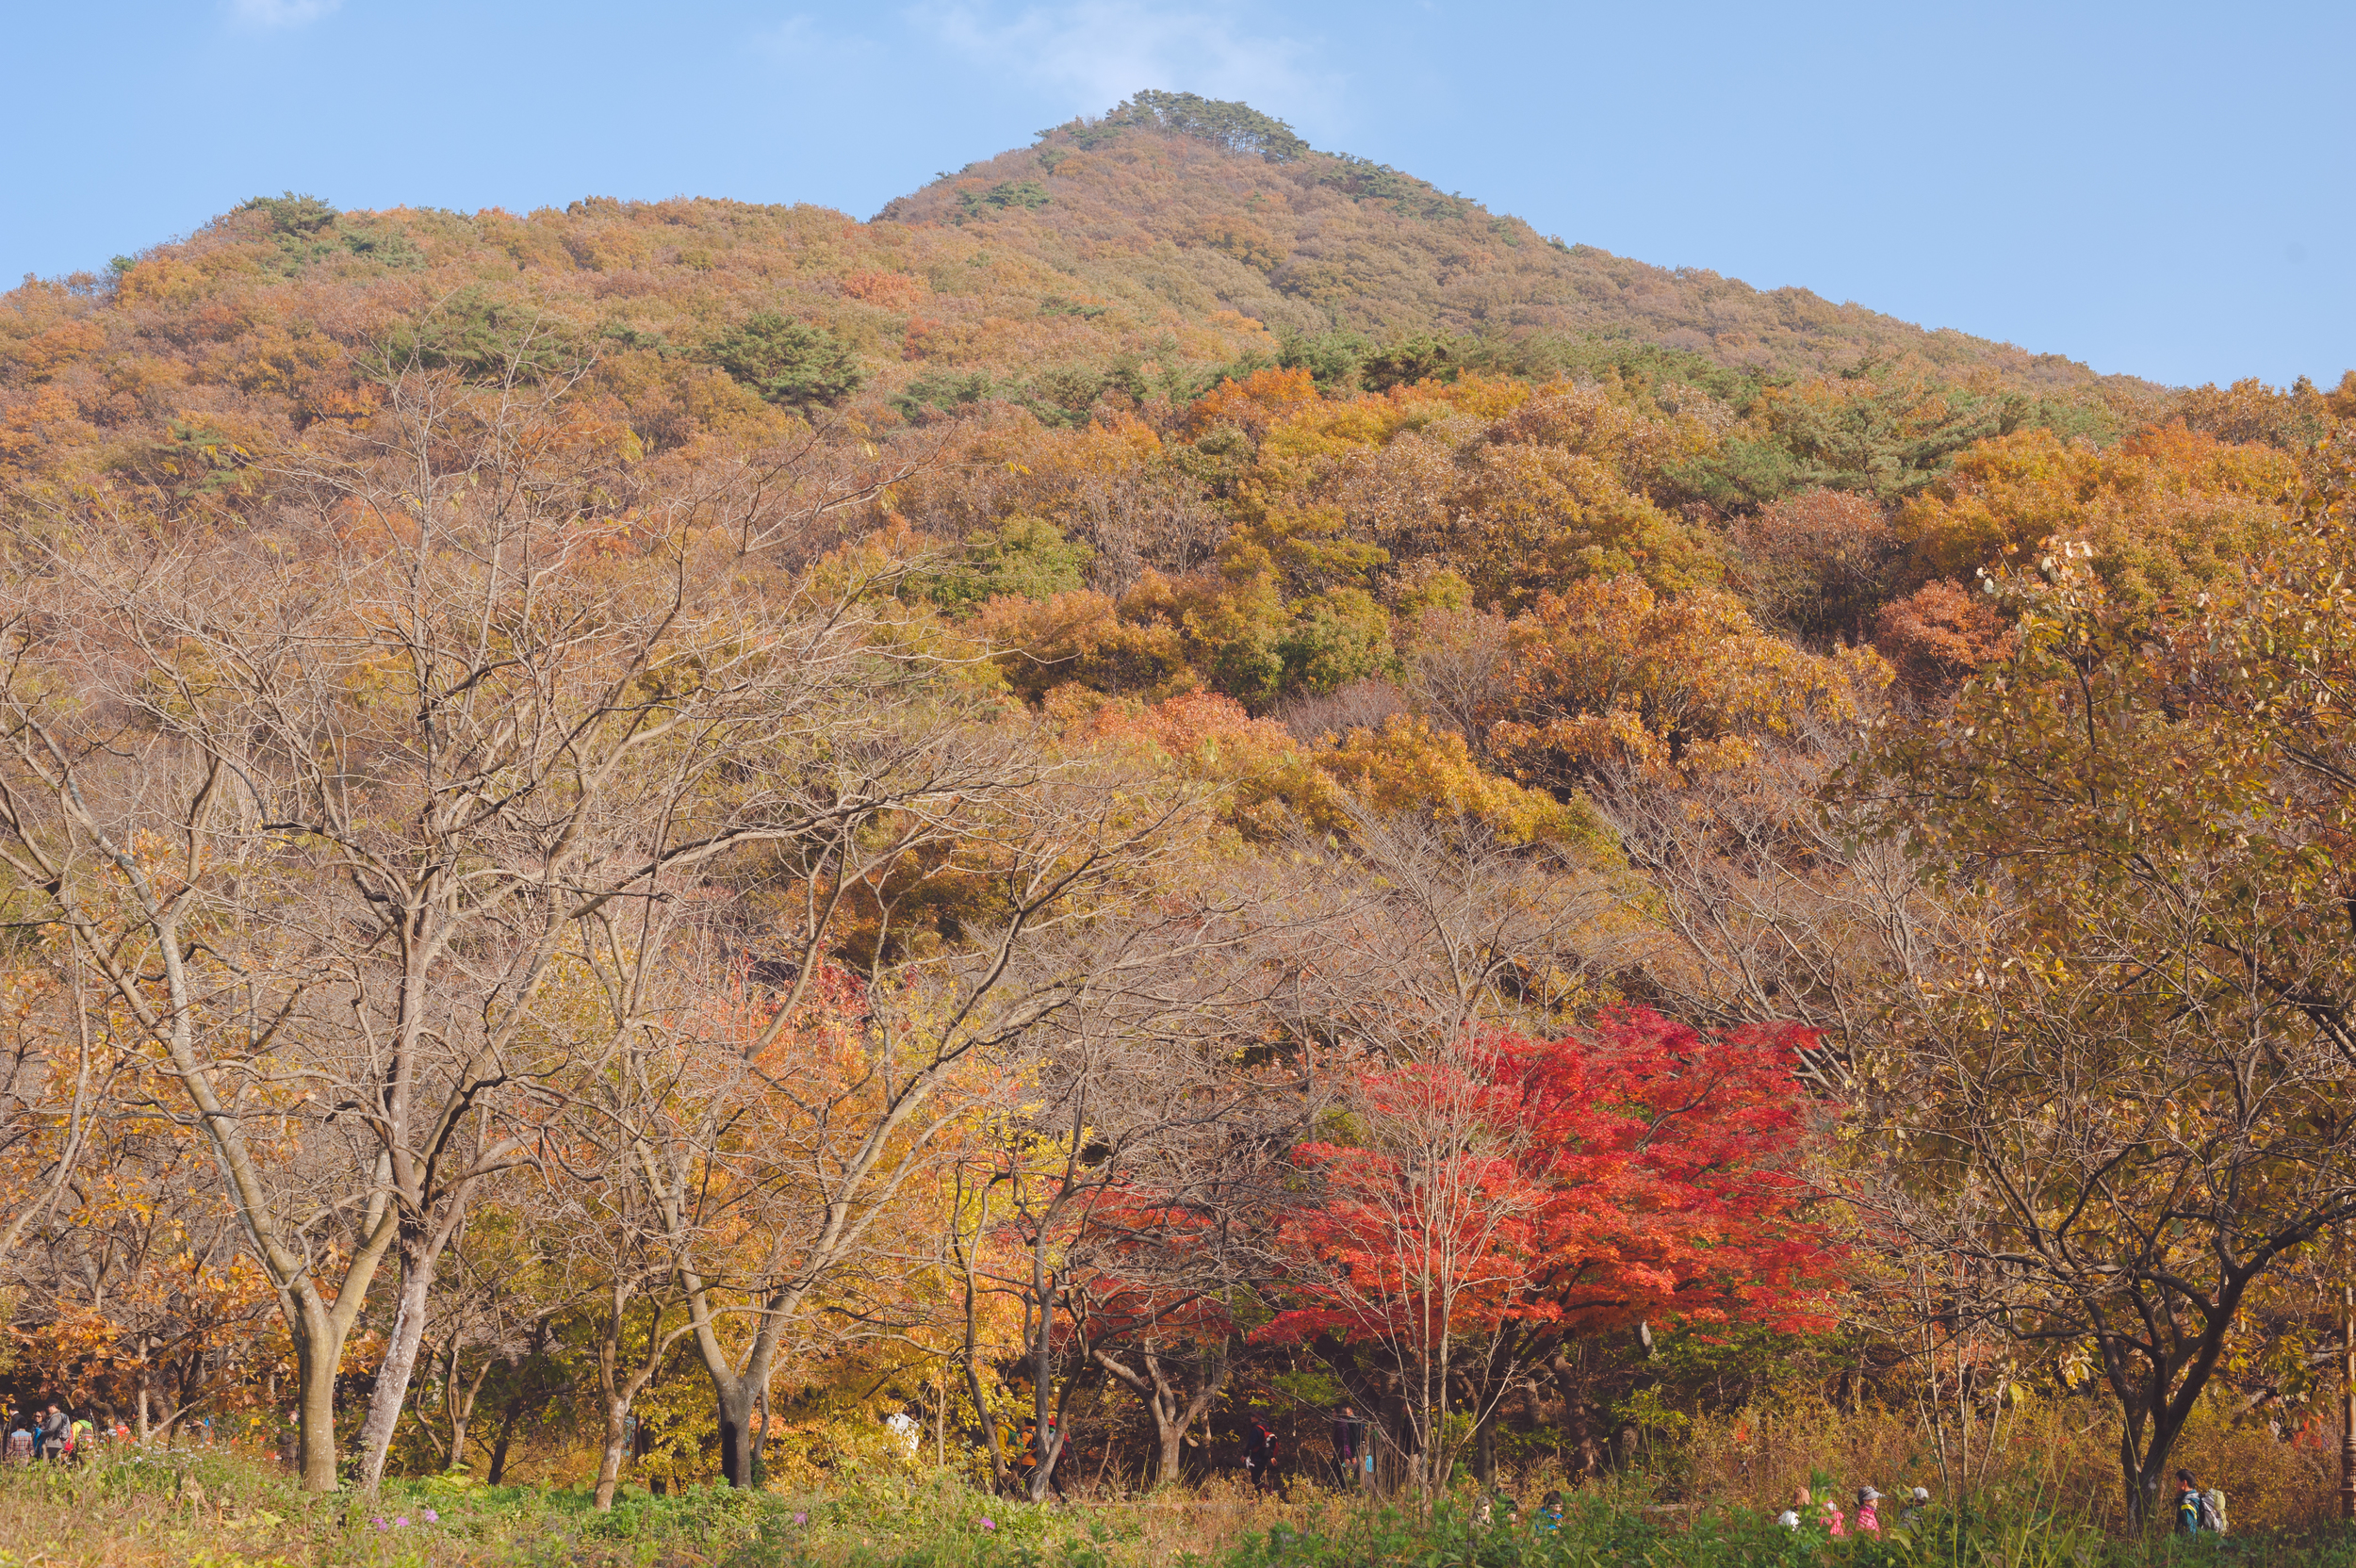 AutumnInKoreaSoenunsaParkFallLeaves (29 of 37).jpg